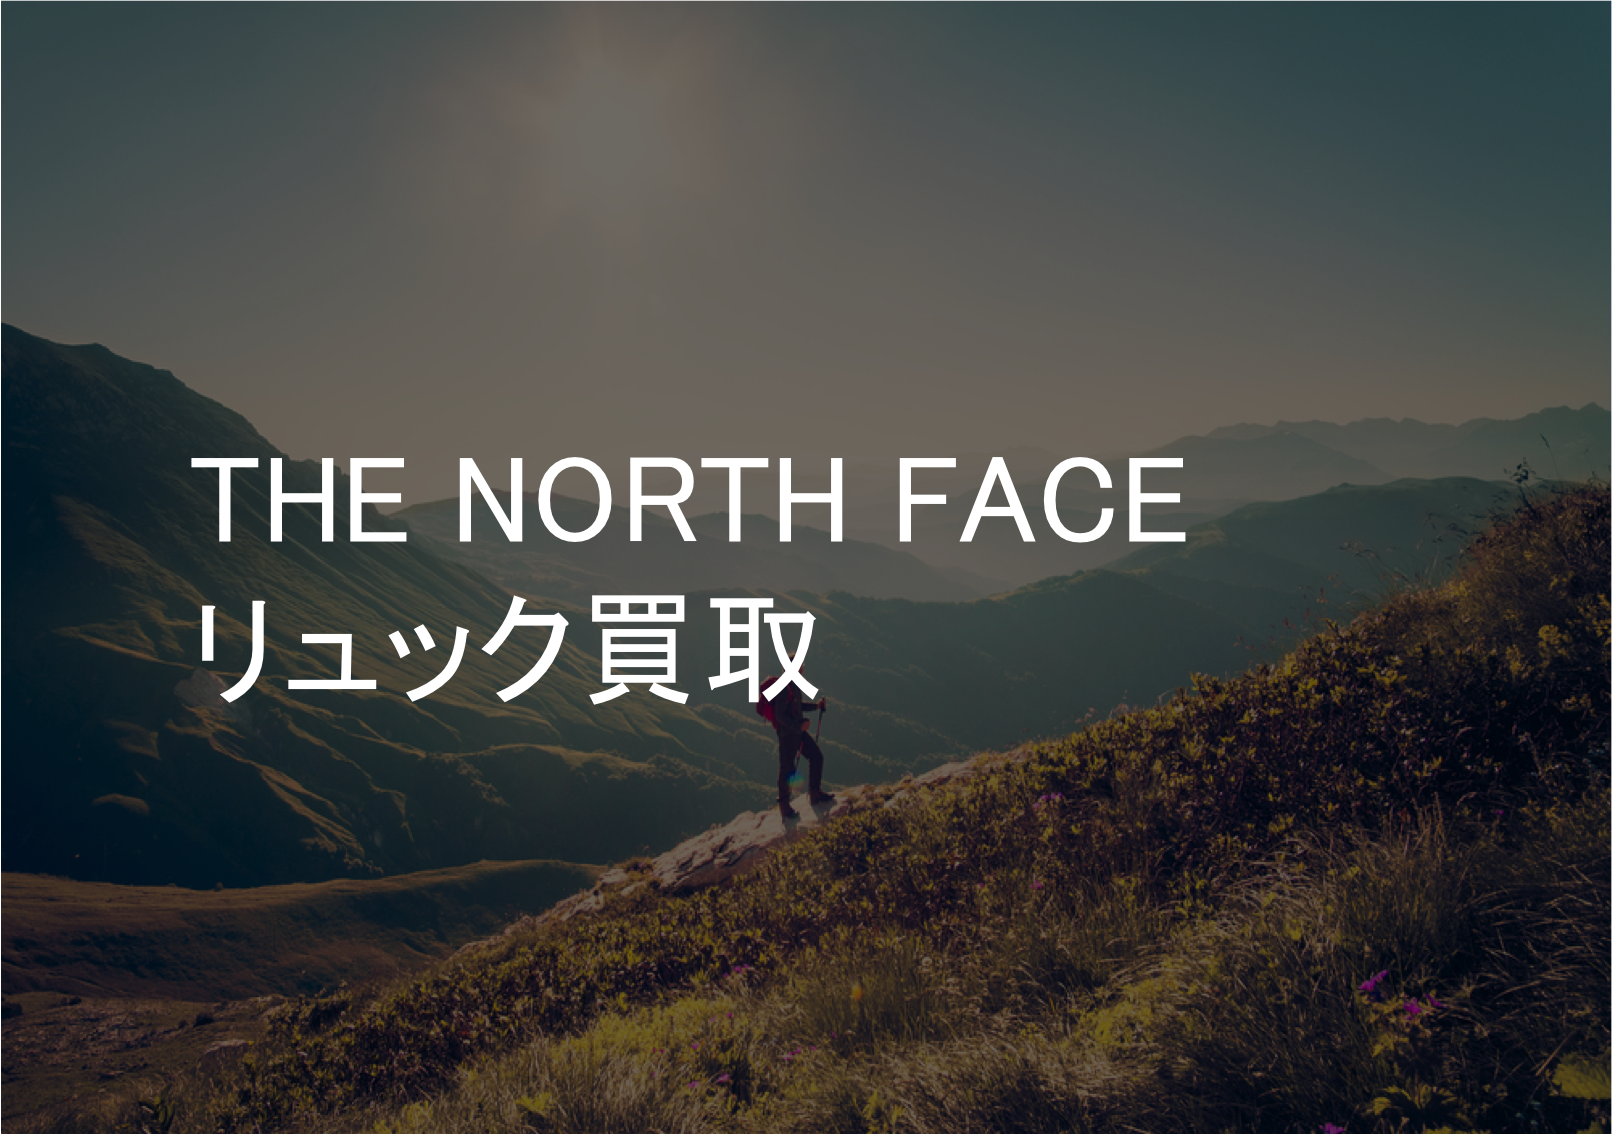 THE NORTH FACE (ノースフェース)リュックサック/バックパック買取なら!